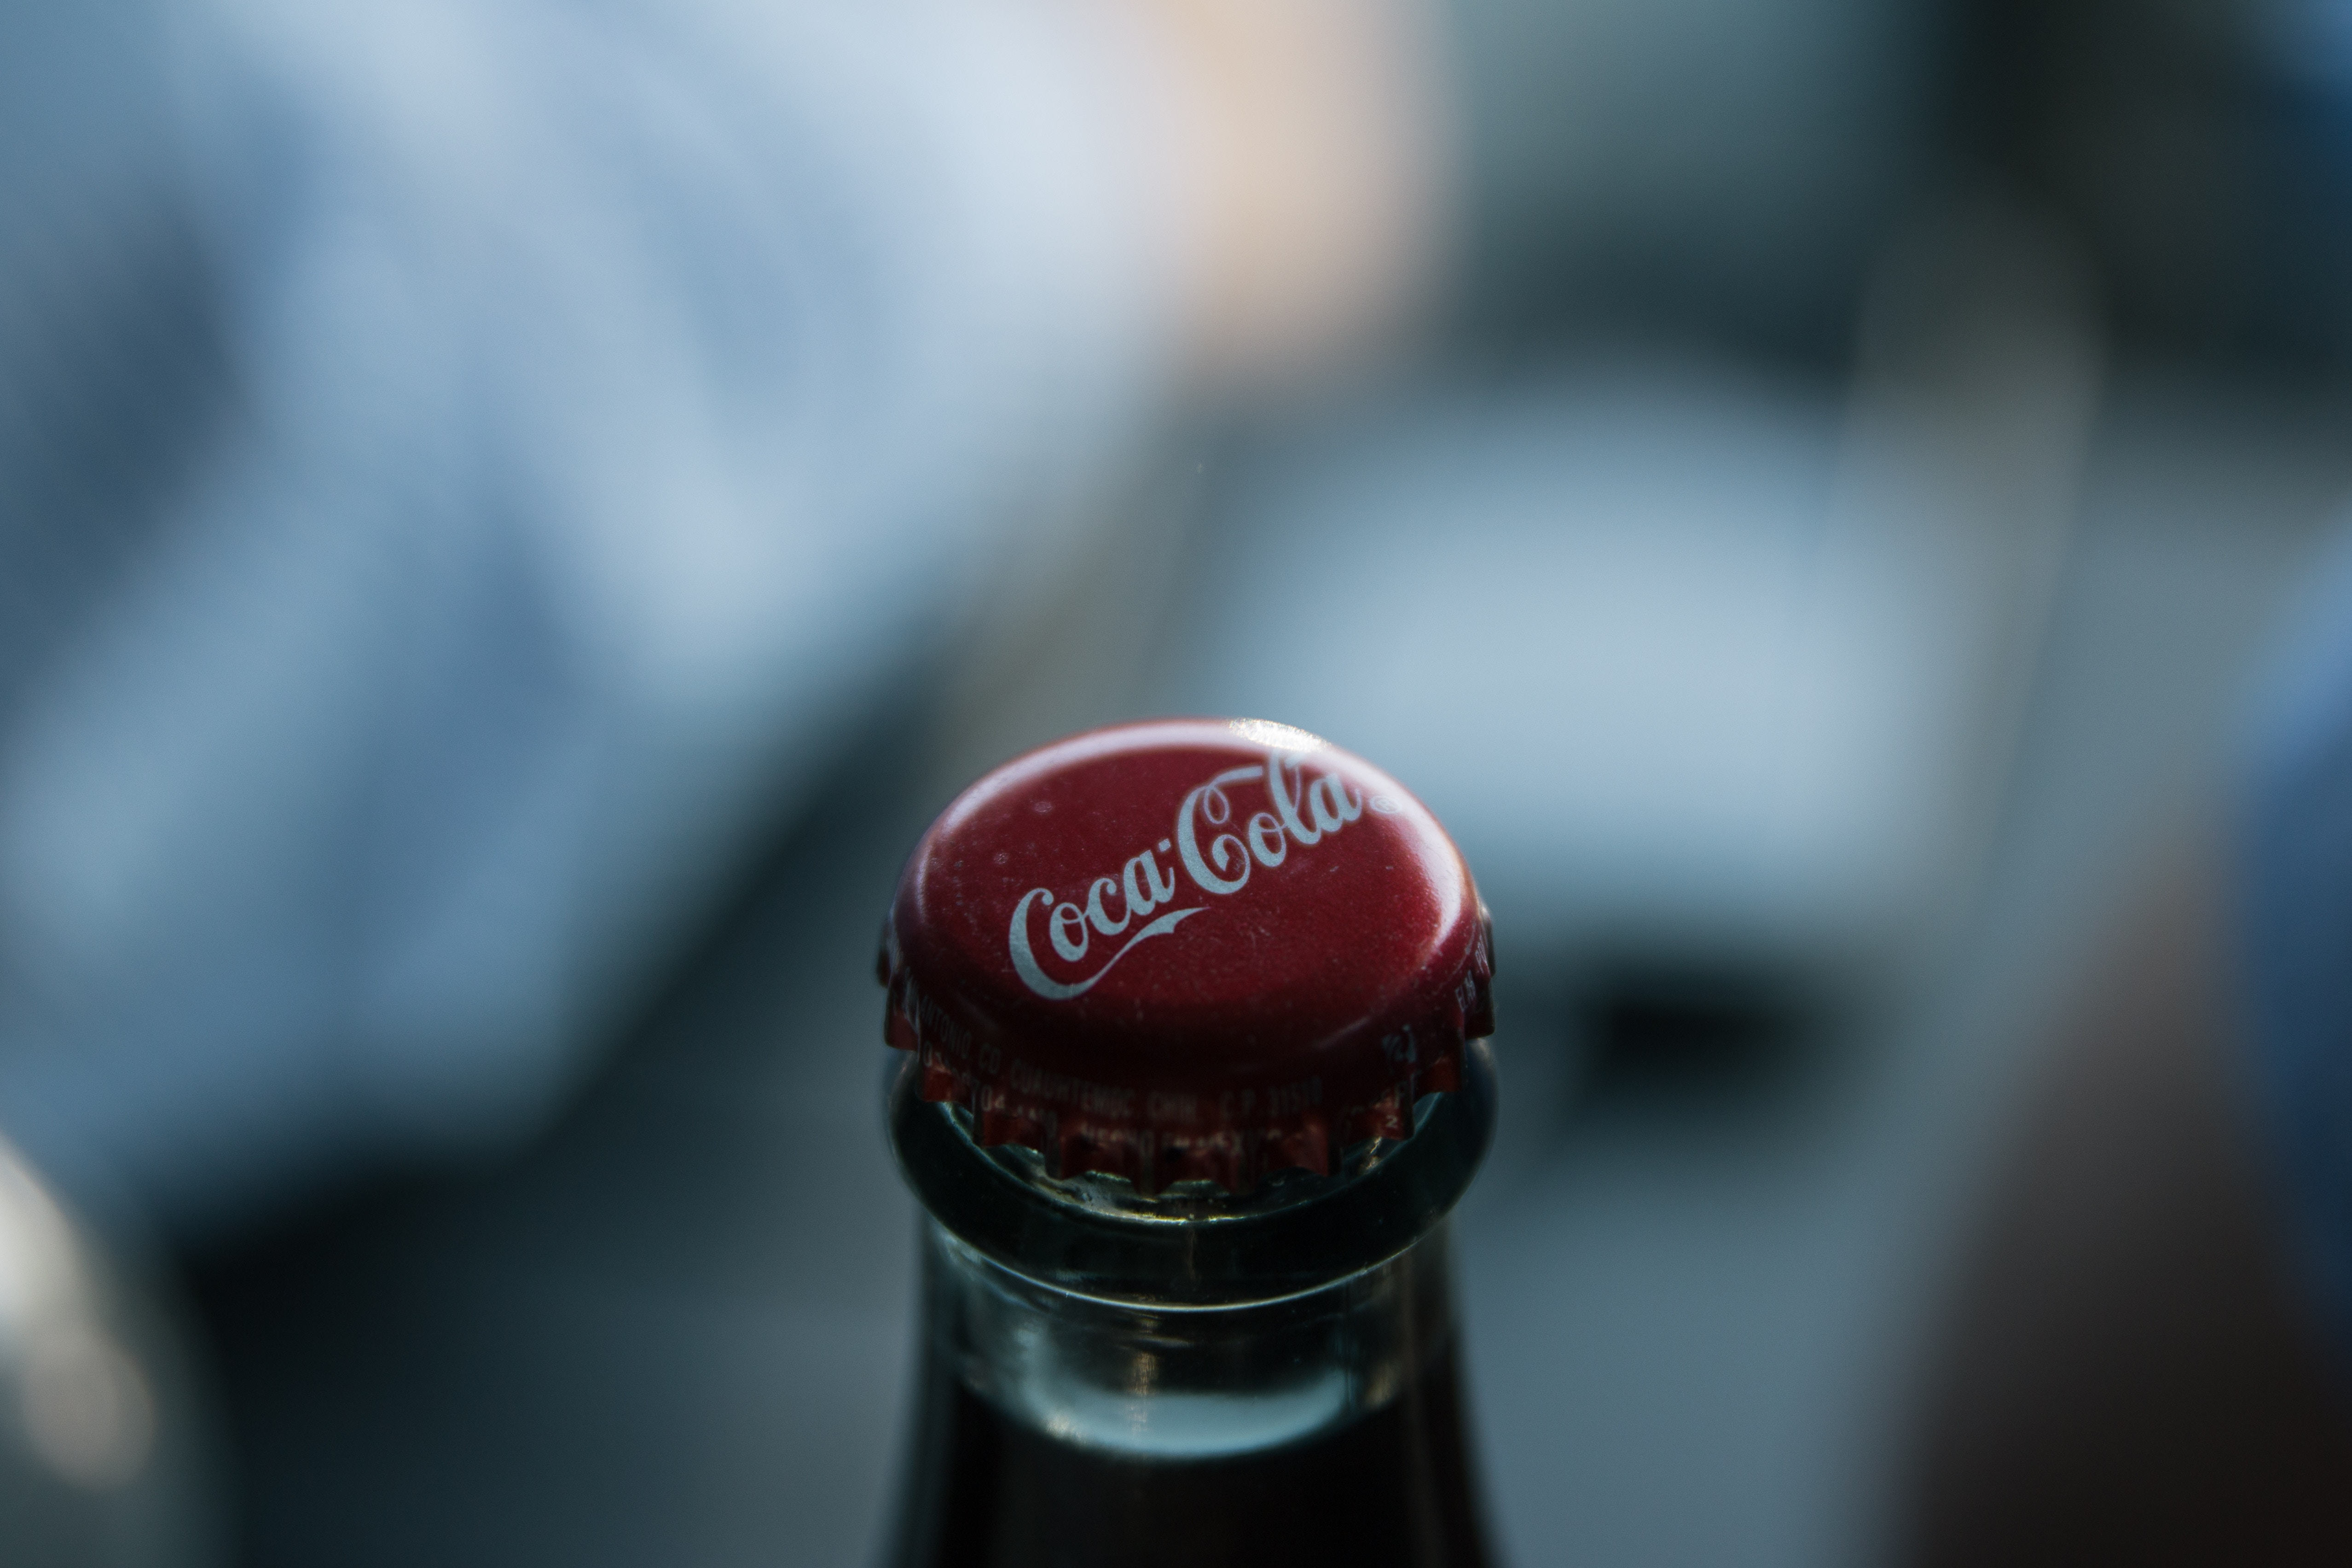 Coca Cola commits $5 billion and new experimental flavors to take over the Indian market